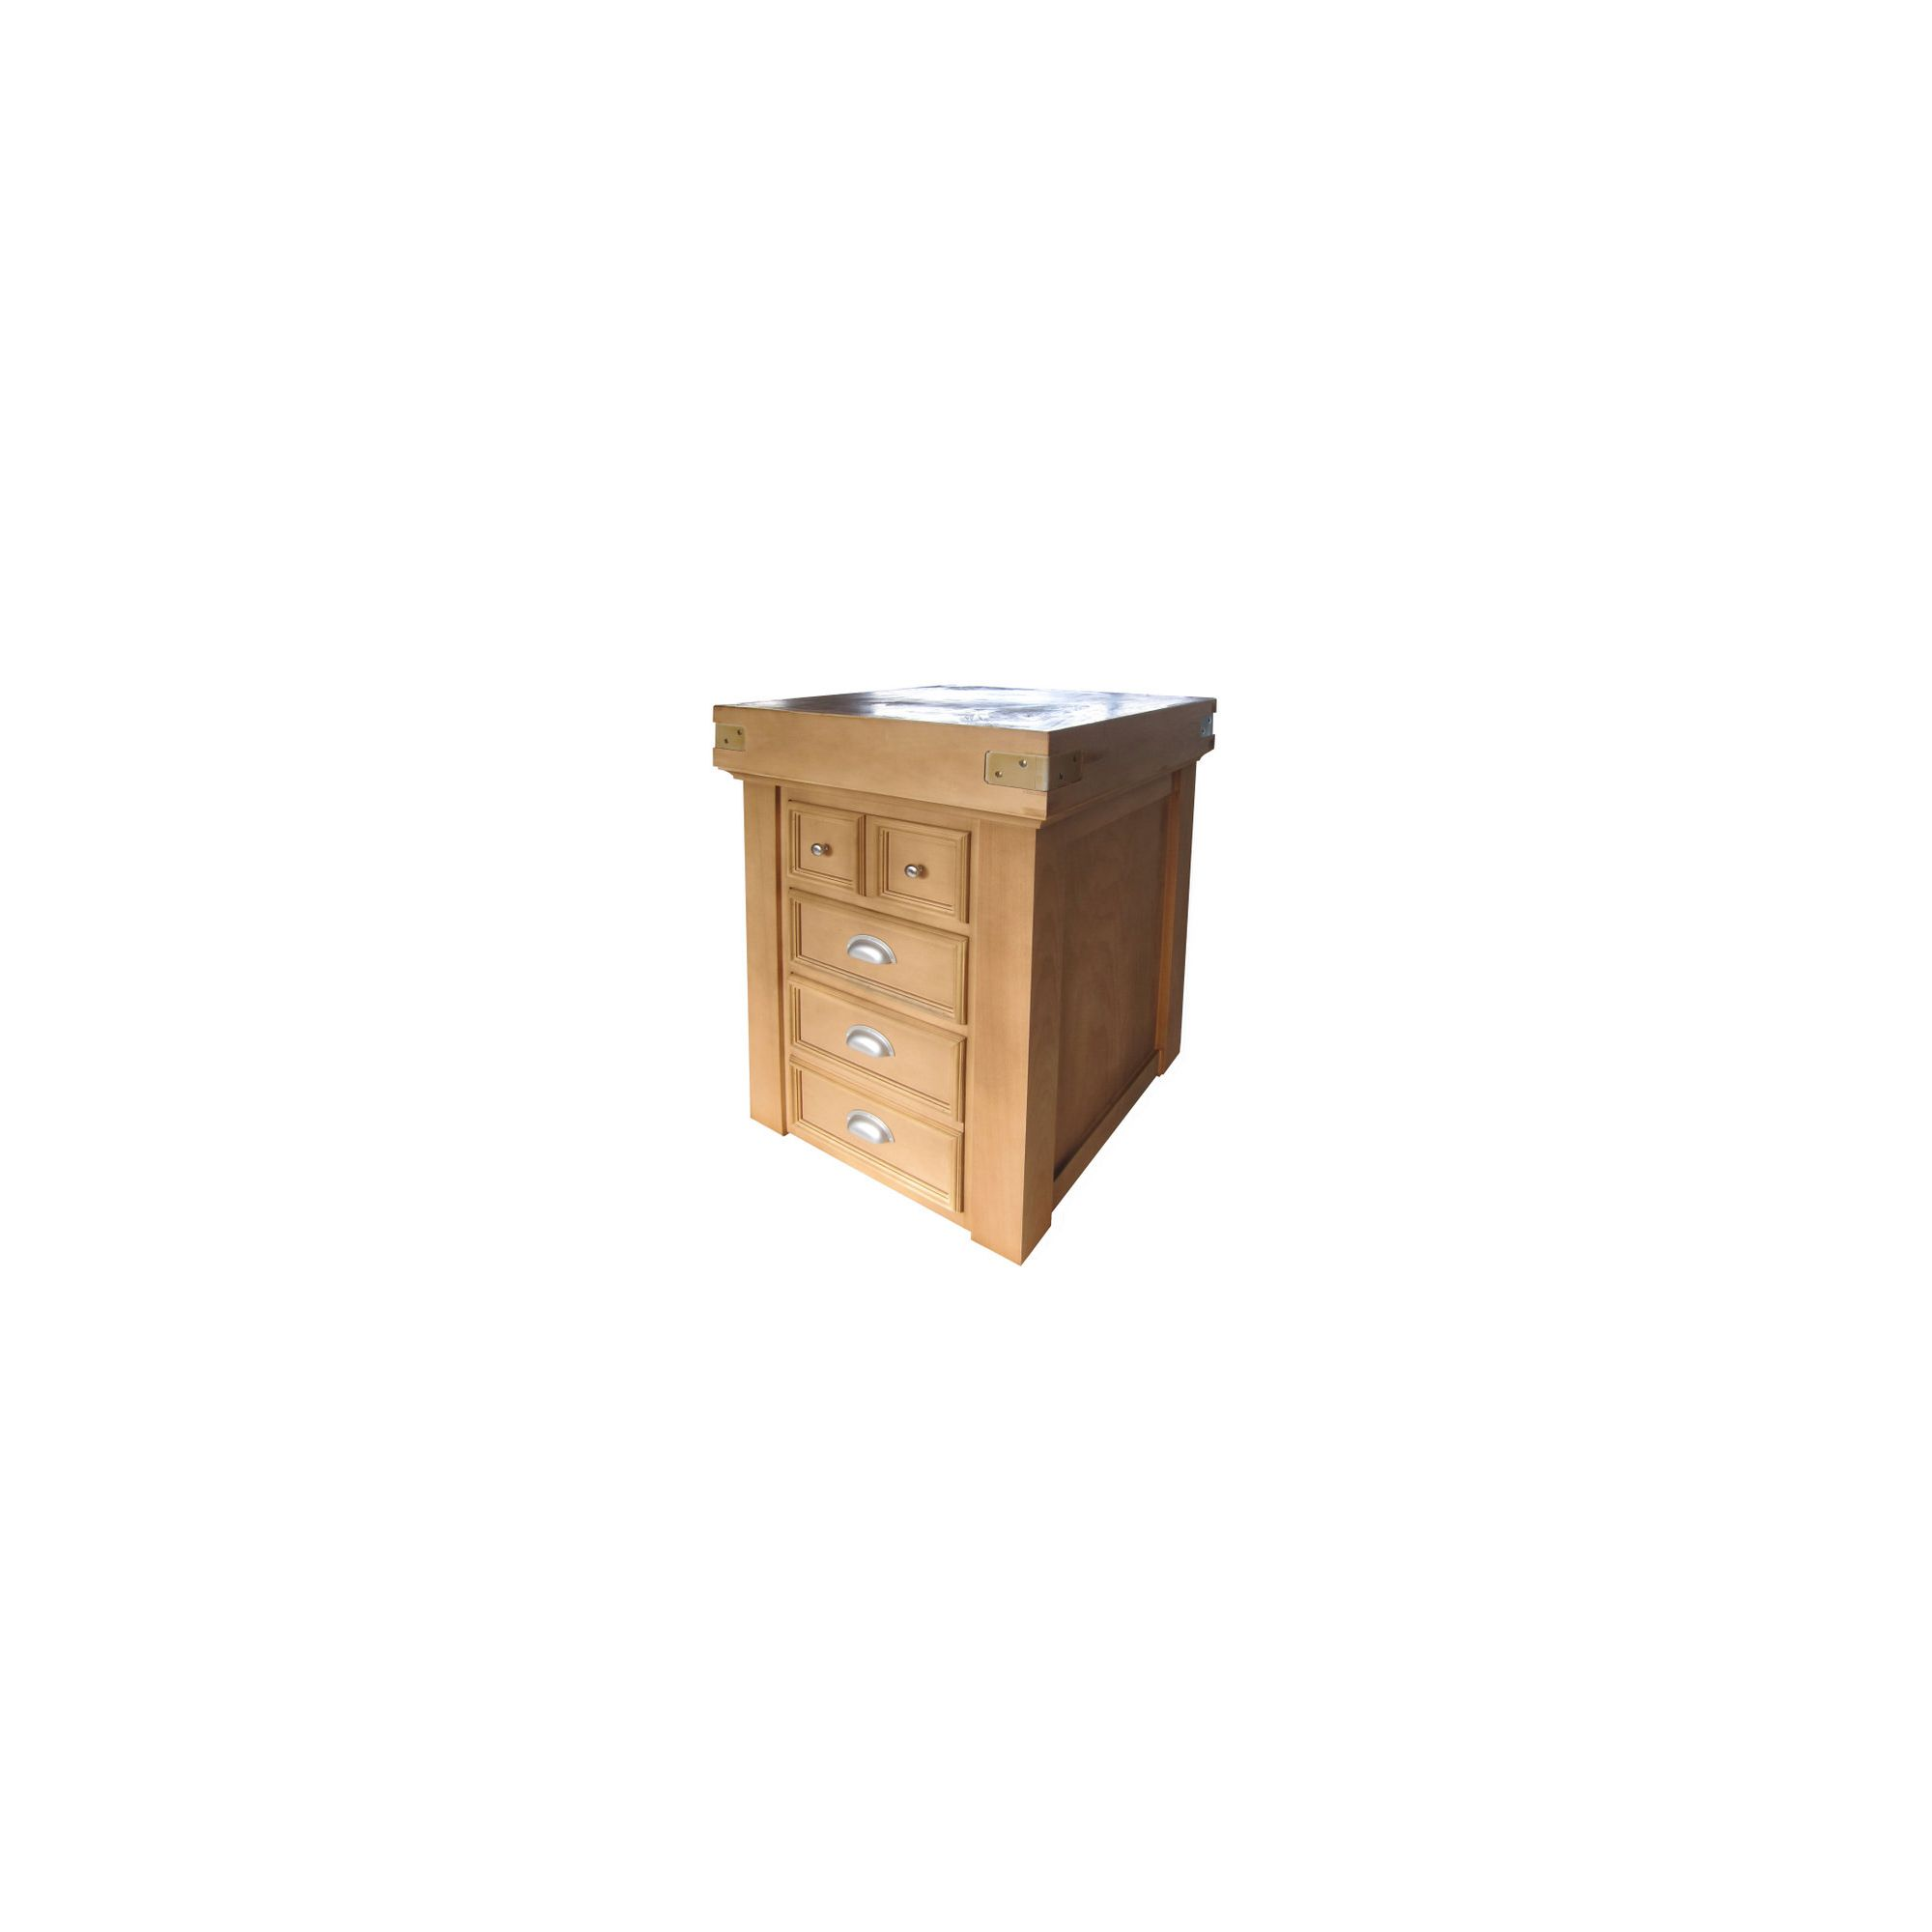 Chabret Traditional Drawers Block - 105cm X 60cm X 60cm at Tesco Direct